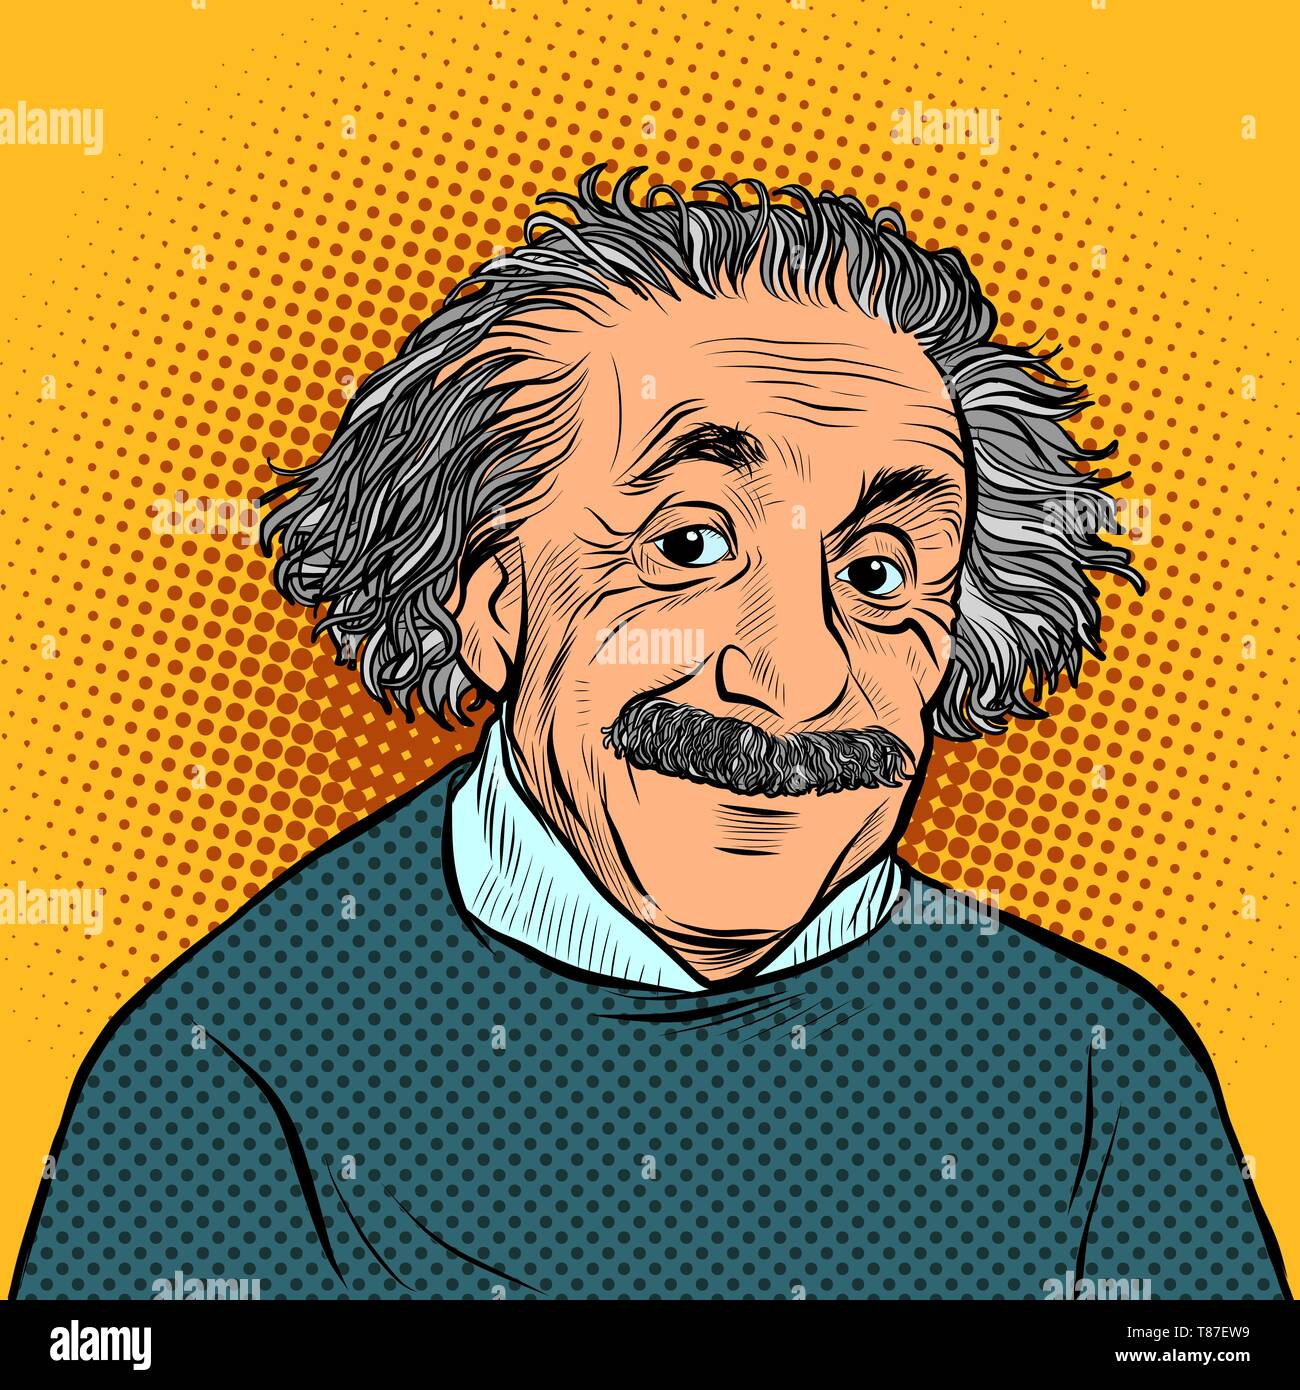 Moscow, Russia - April 11, 2019. Albert Einstein, scientist, physicist hand-drawn portrait Science and education - Stock Image